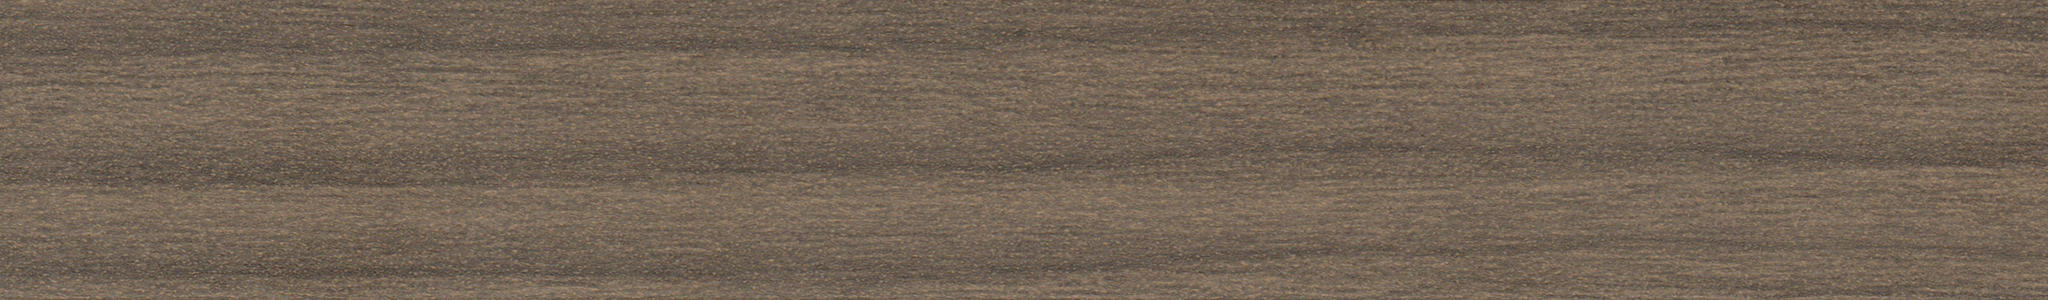 HD 288448 ABS Edge Walnut Ribera Pearl